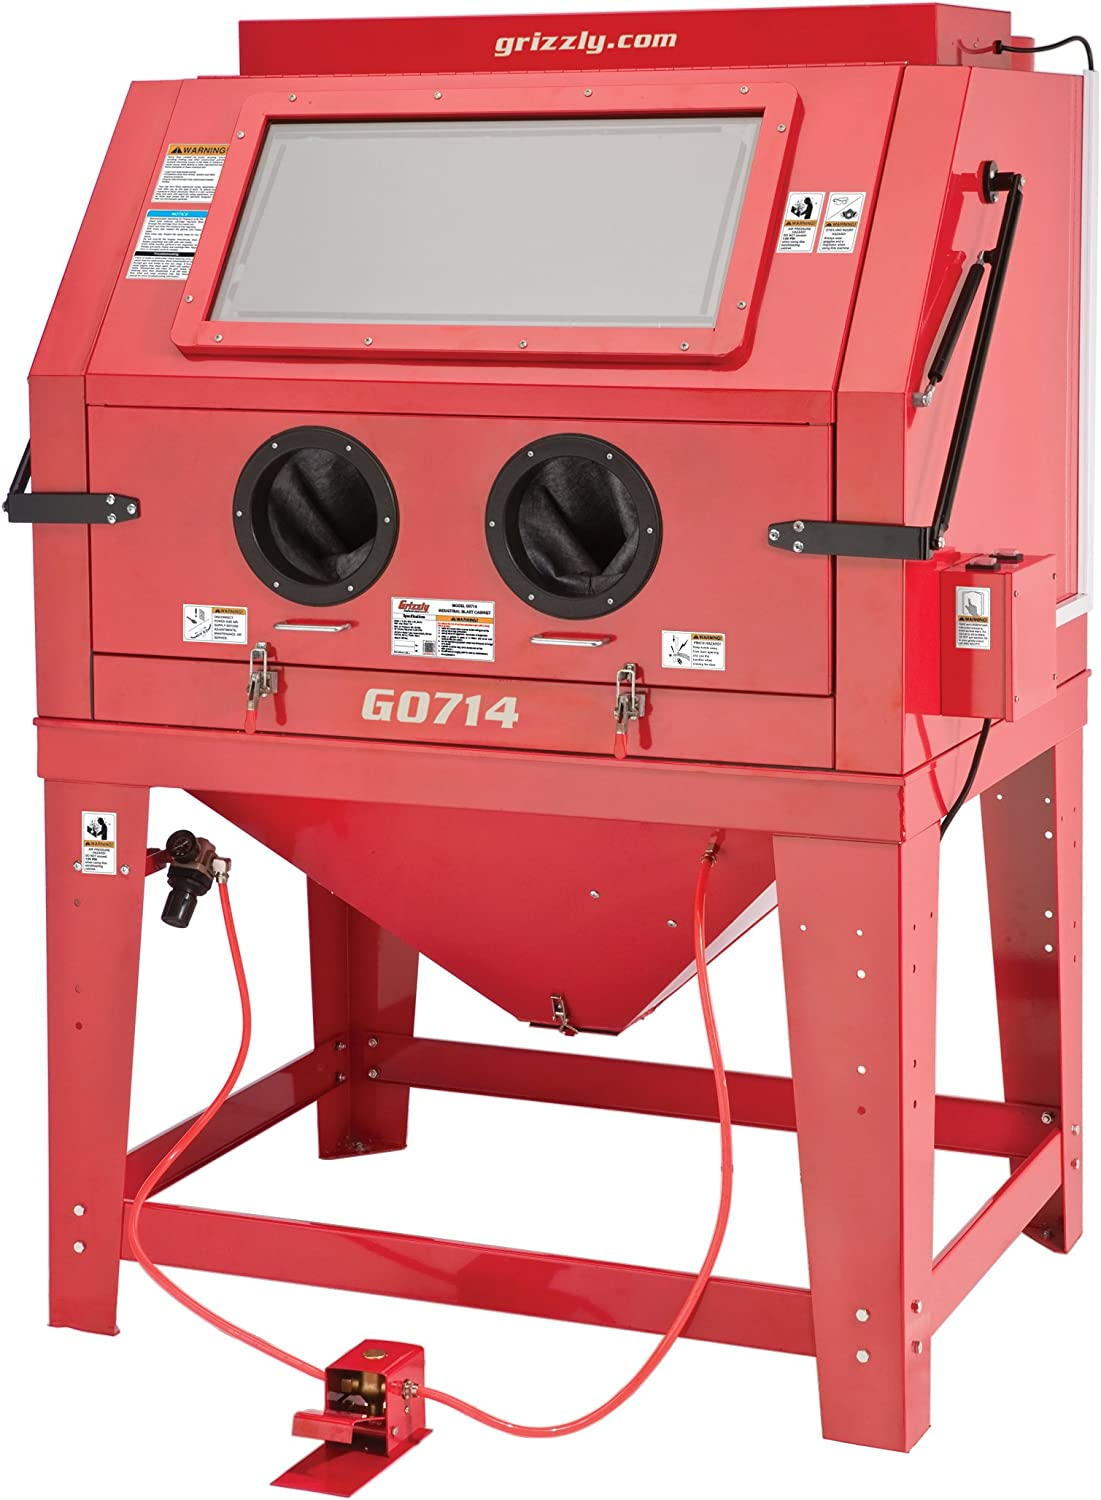 Grizzly G0714 Industrial Blast Cabinet